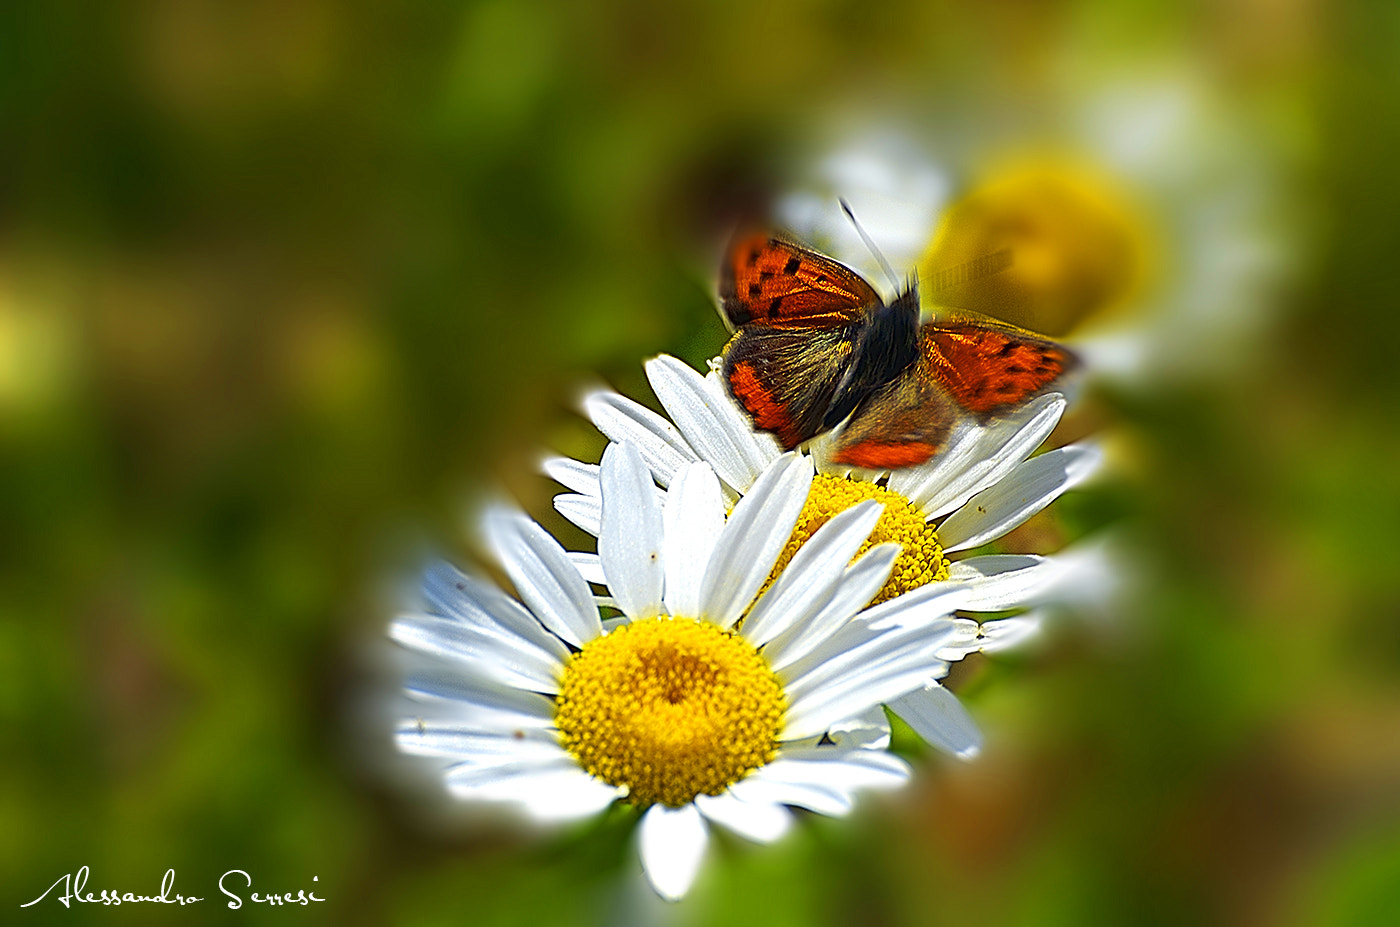 Photograph BUTTERFLY ON THE DAISY by Alessandro Serresi on 500px